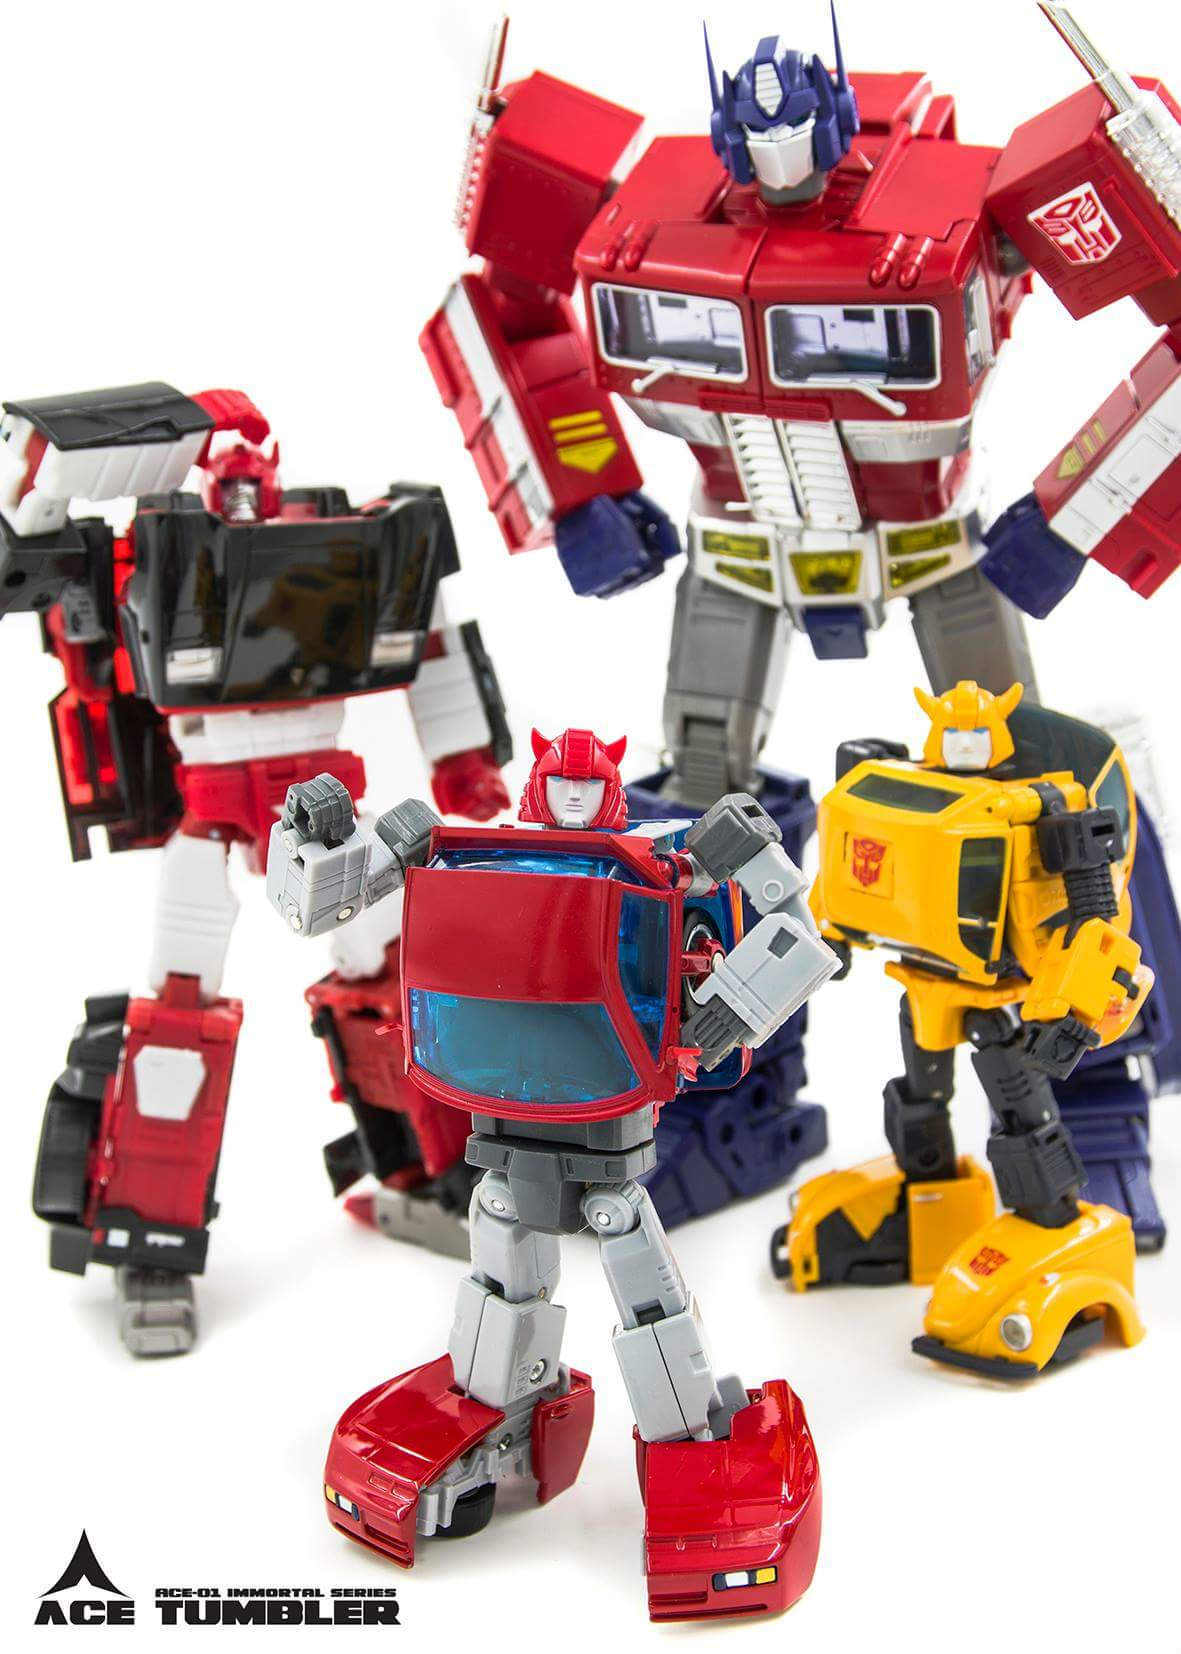 [ACE Collectables] Produit Tiers - Minibots MP - ACE-01 Tumbler (aka Cliffjumper/Matamore), ACE-02 Hiccups (aka Hubcap/Virevolto), ACE-03 Trident (aka Seaspray/Embruns) WP8bSHD0